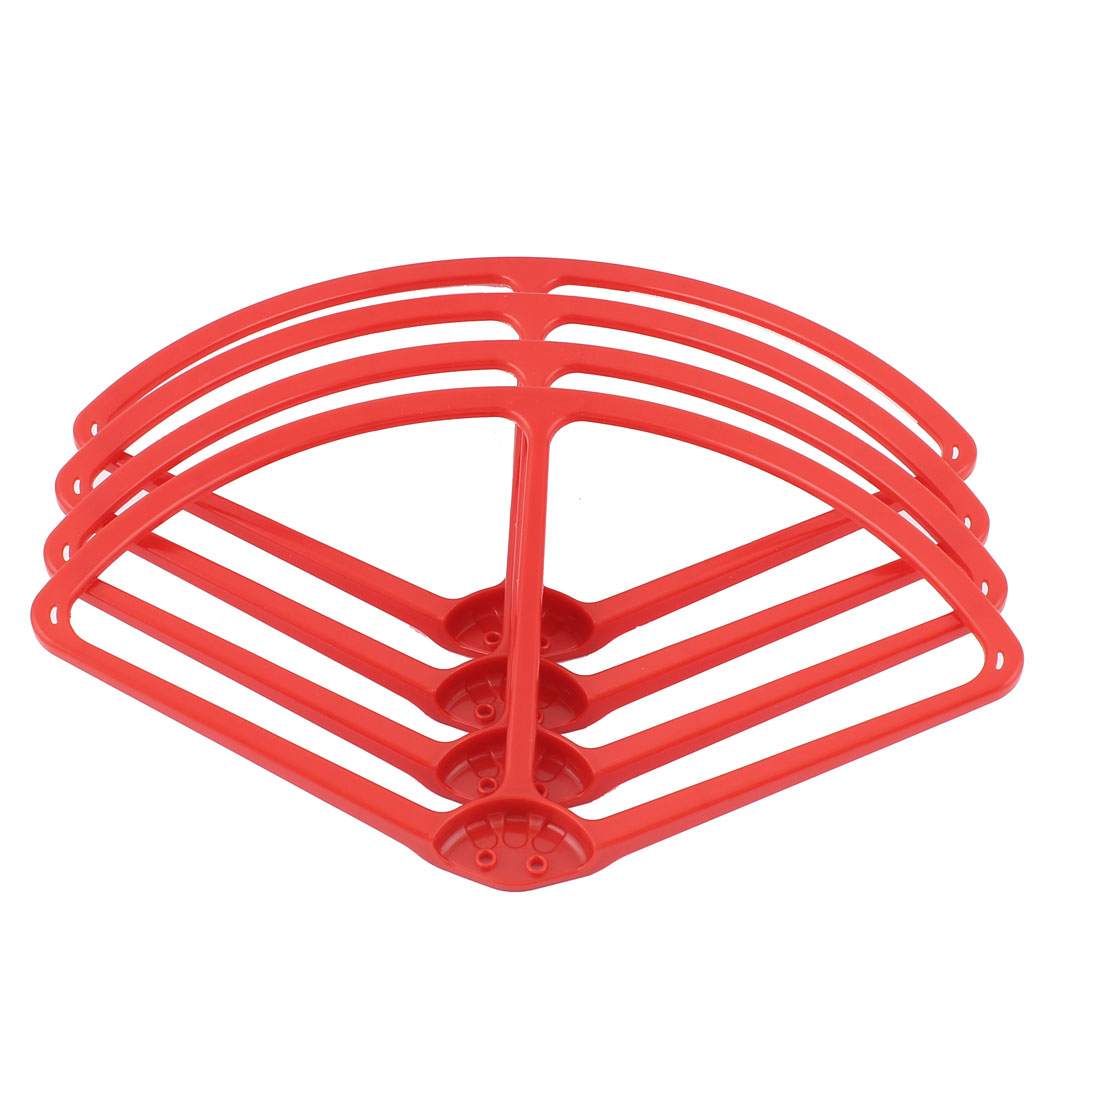 "9"" Propeller Blade Protective Guard Bumpers Set Red for DJI Phantom 2 Vision"